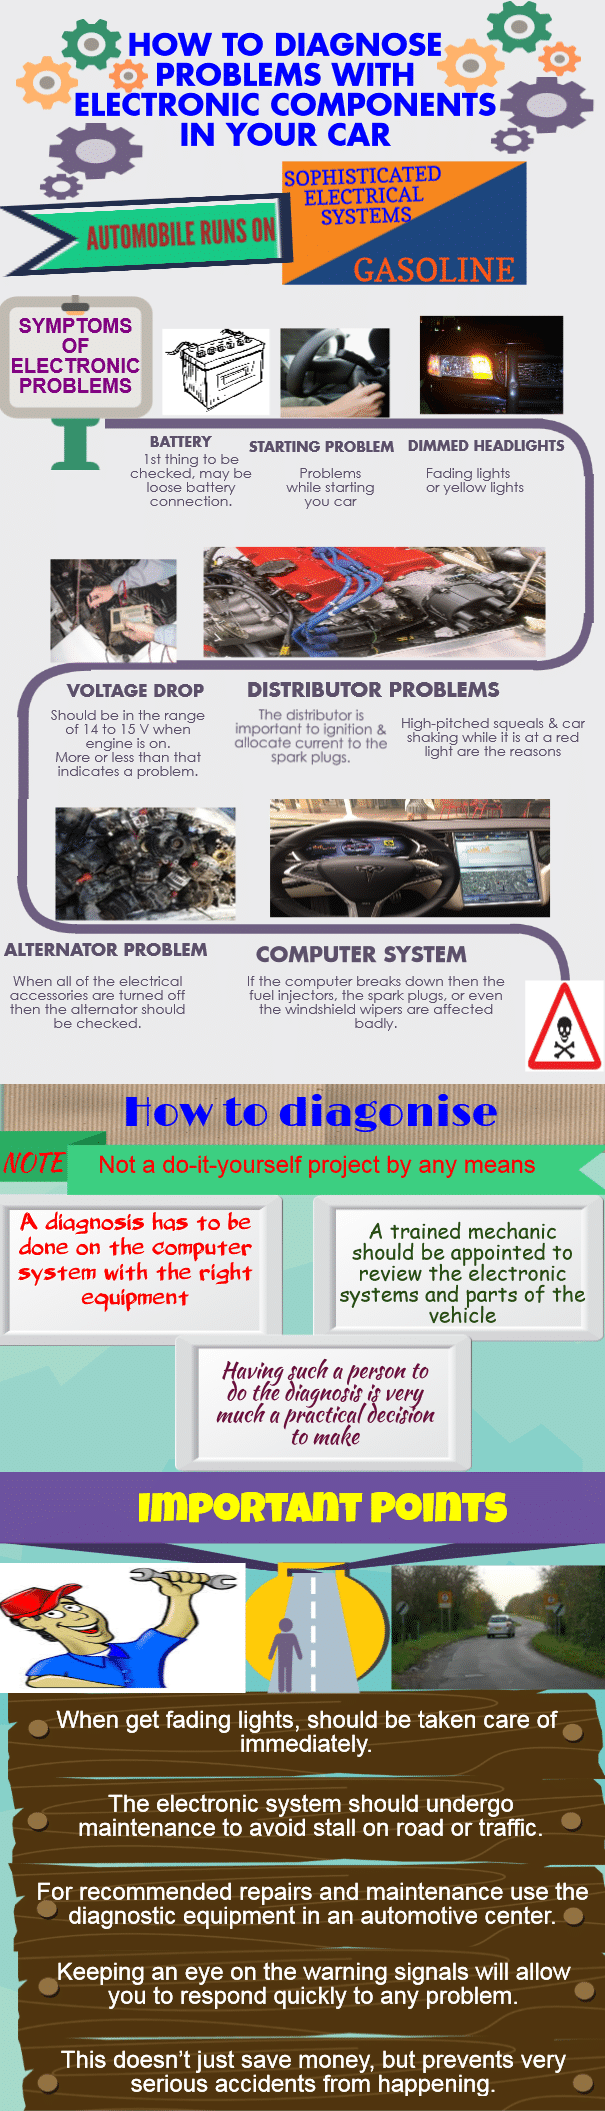 How To Diagnose Problems With Electronic Components In Your Car Automechanic Lights Electrical Connections A Major Component Every Modern Is The Computer There Can Be One Or More Vehicle And Operation Very Dependent On It